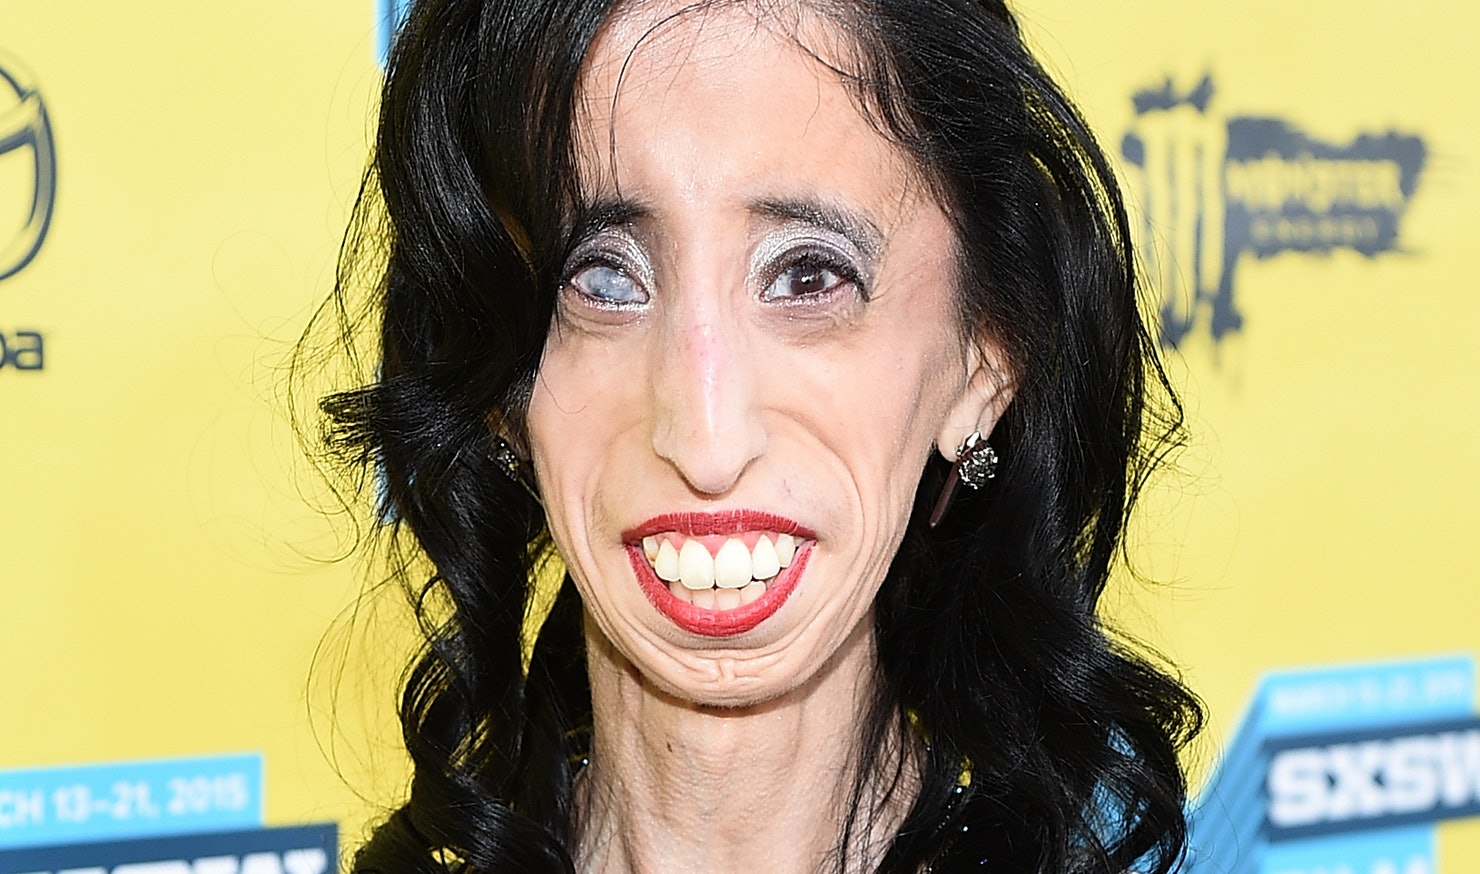 """Bustle - """"You probably know who Lizzie Velasquez is already, but if you don't, well, prepare to meet your newest role model. The 26-year-old just debuted her documentary """"A Brave Heart: The Lizzie Velasquez Story"""" at the SXSW Festival, and boy, did it move everyone's hearts."""""""